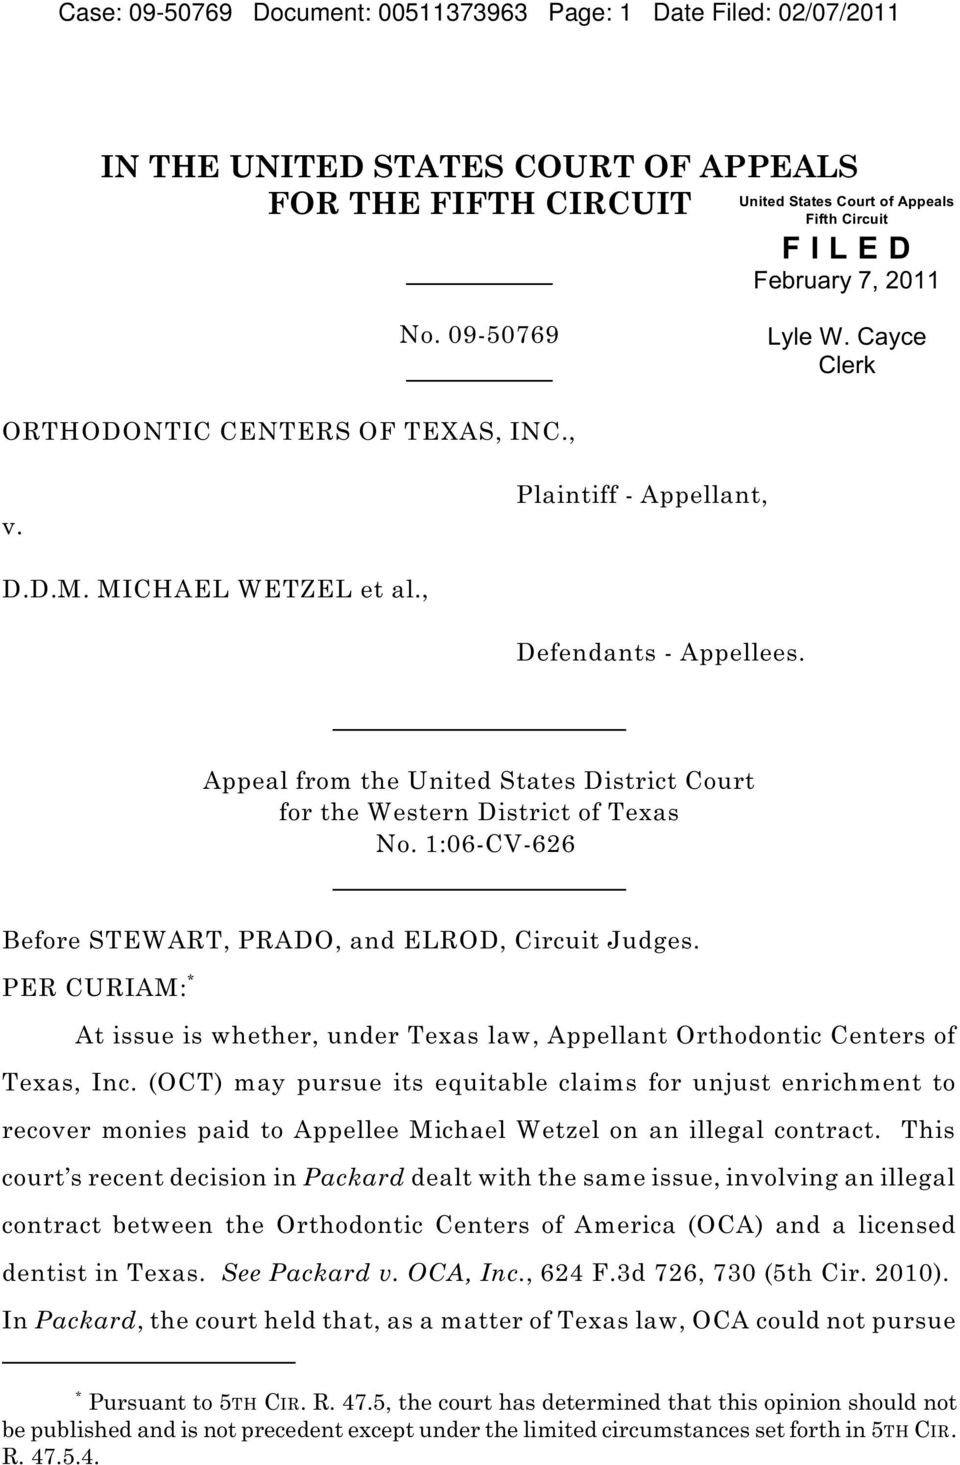 Appeal from the United States District Court for the Western District of Texas No. 1:06-CV-626 Before STEWART, PRADO, and ELROD, Circuit Judges.